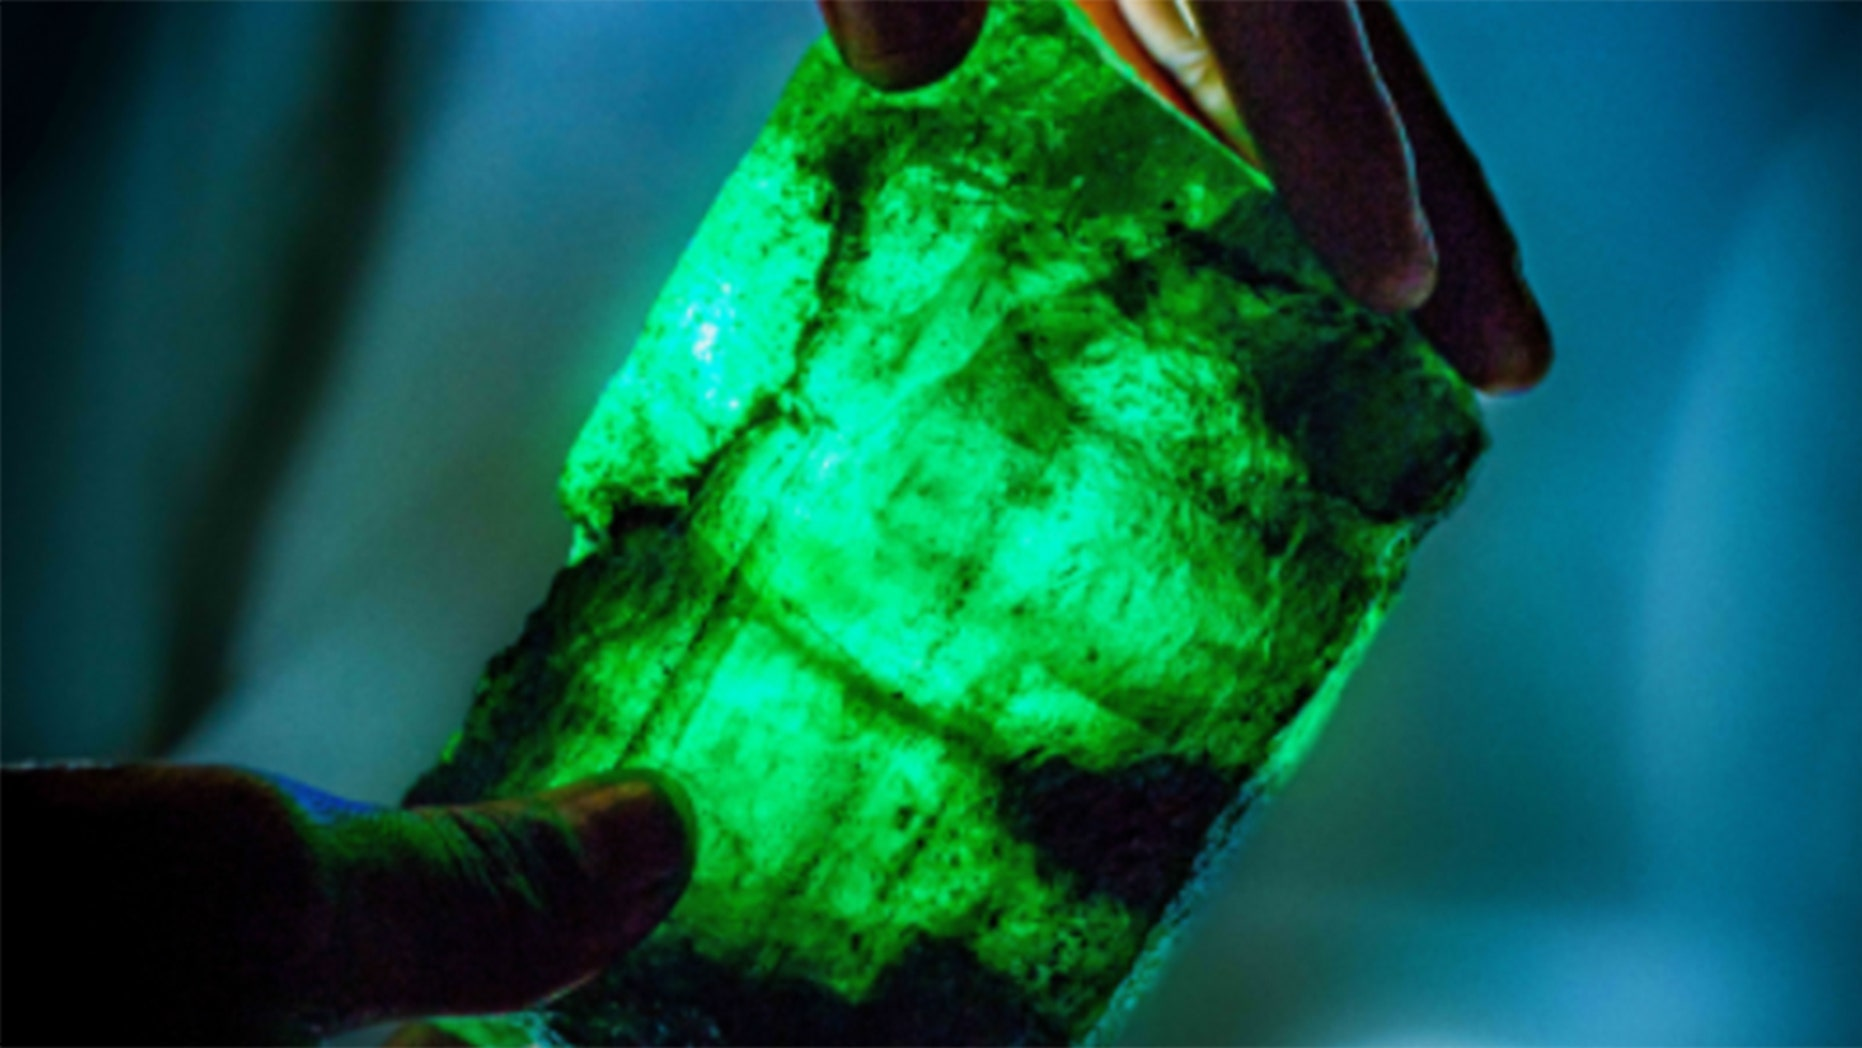 Miners uncovered a large emerald crystal inside the world's largest emerald mine in Zambia on Oct. 2, 2018.